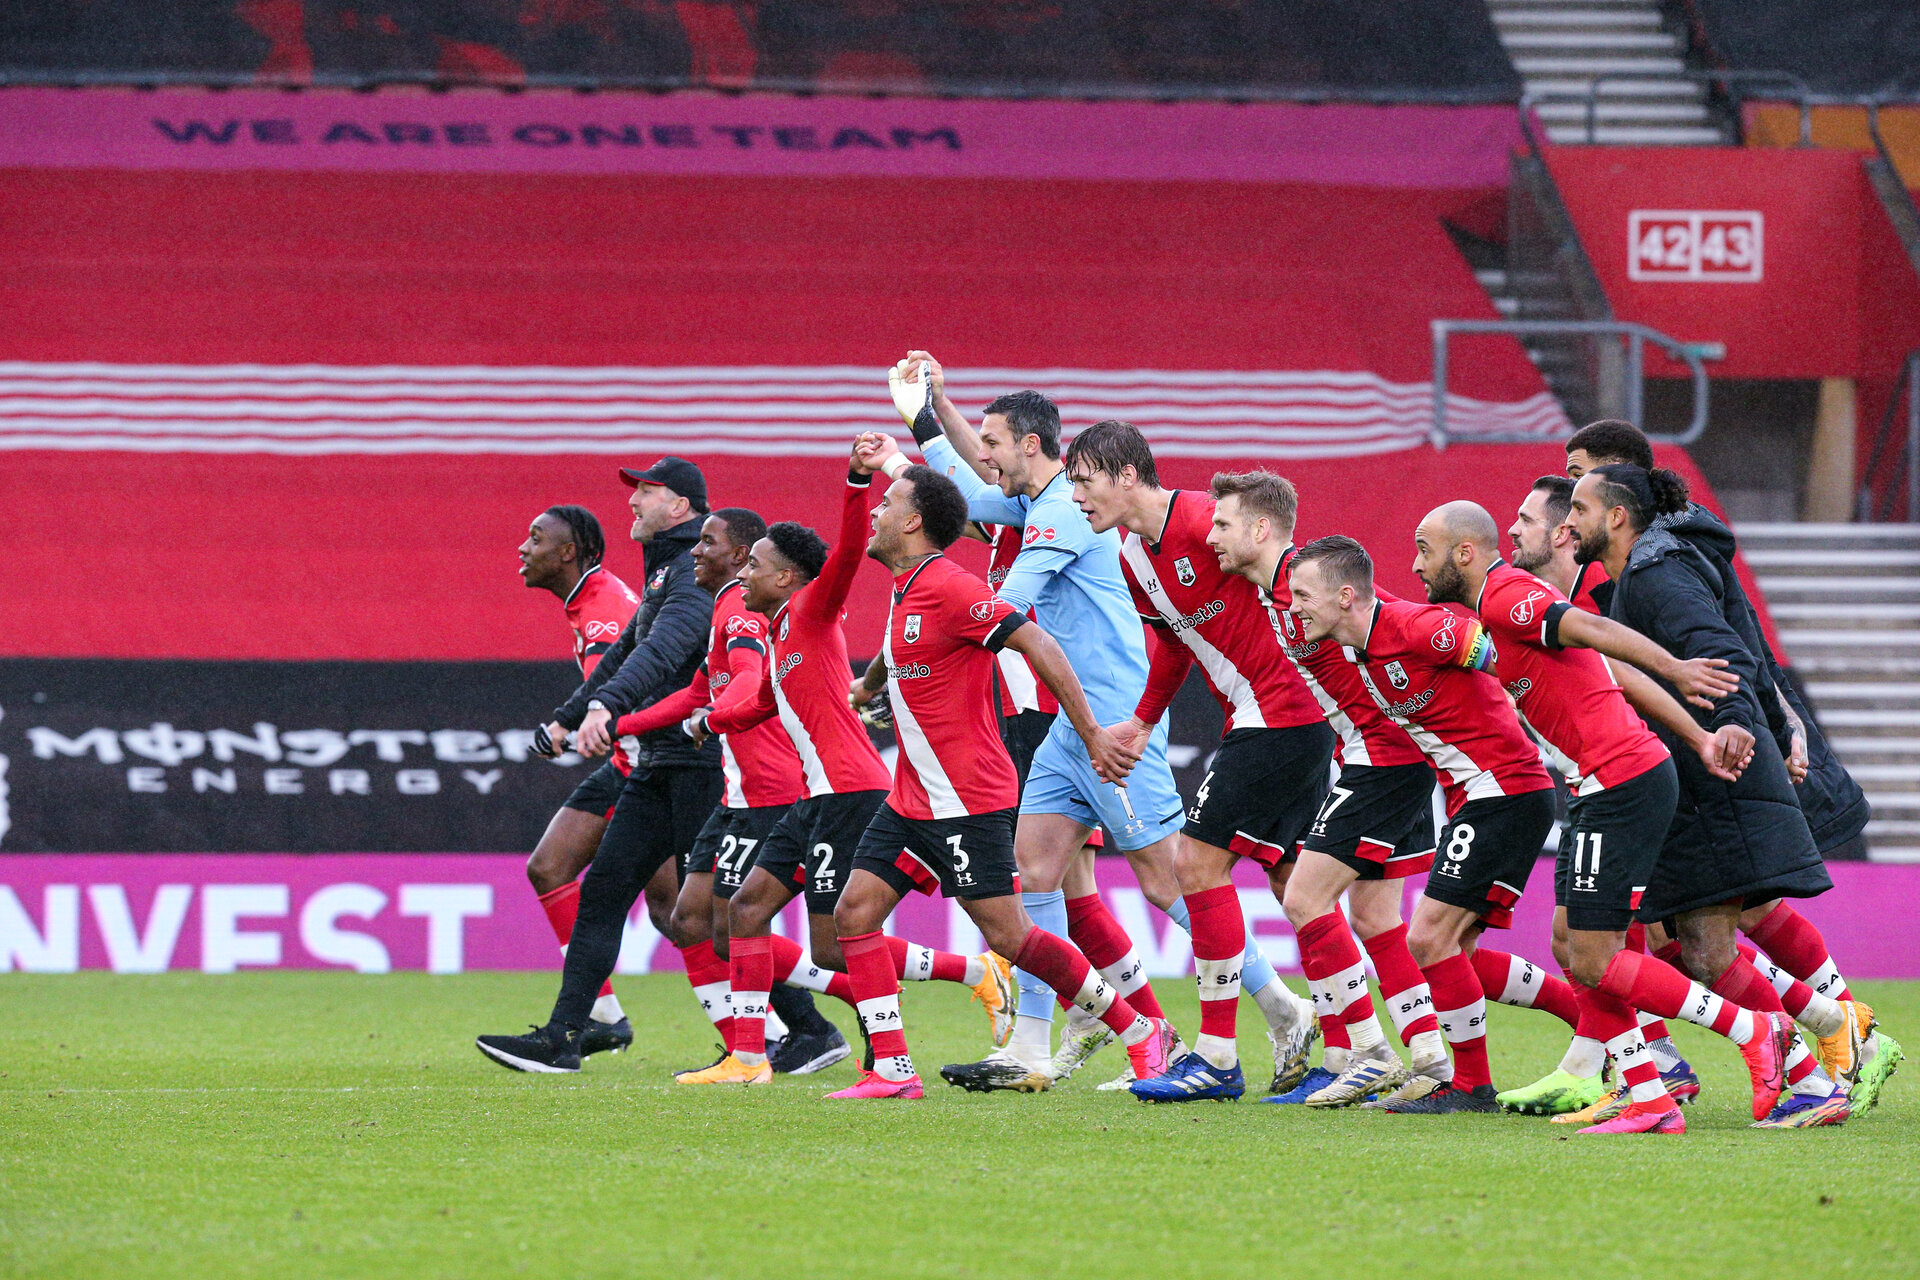 SOUTHAMPTON, ENGLAND - DECEMBER 13: Southampton at full-time during the Premier League match between Southampton and Sheffield United at St Mary's Stadium on December 13, 2020 in Southampton, United Kingdom. A limited number of spectators (2000) are welcomed back to stadiums to watch elite football across England. This was following easing of restrictions on spectators in tiers one and two areas only. (Photo by Chris Moorhouse/Southampton FC via Getty Images)